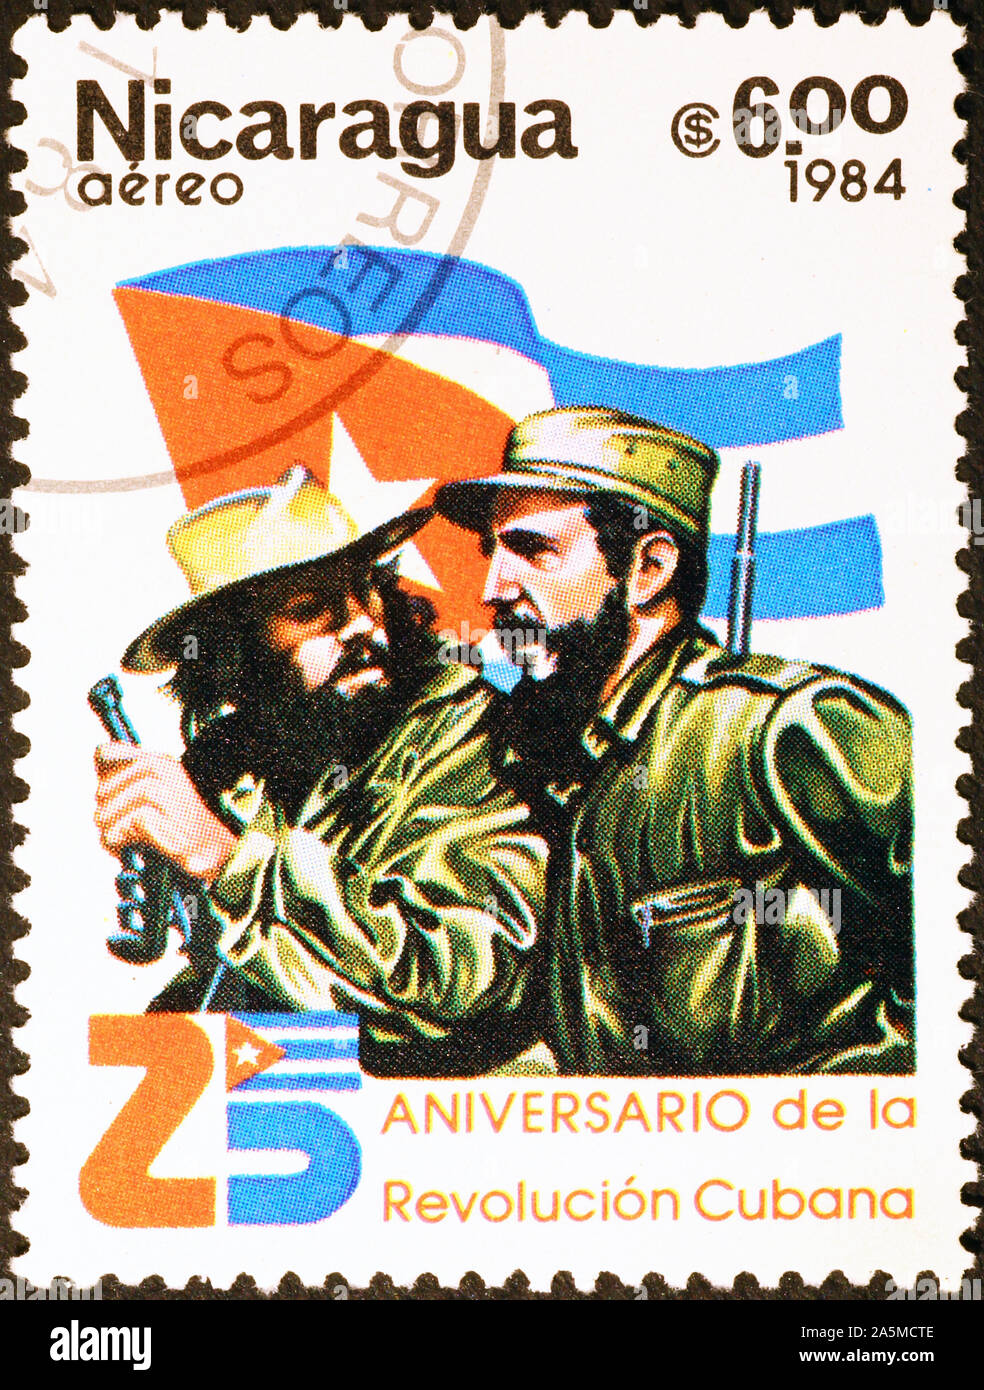 Fidel Castro and Che Guevara on postage stamp of Nicaragua Stock Photo